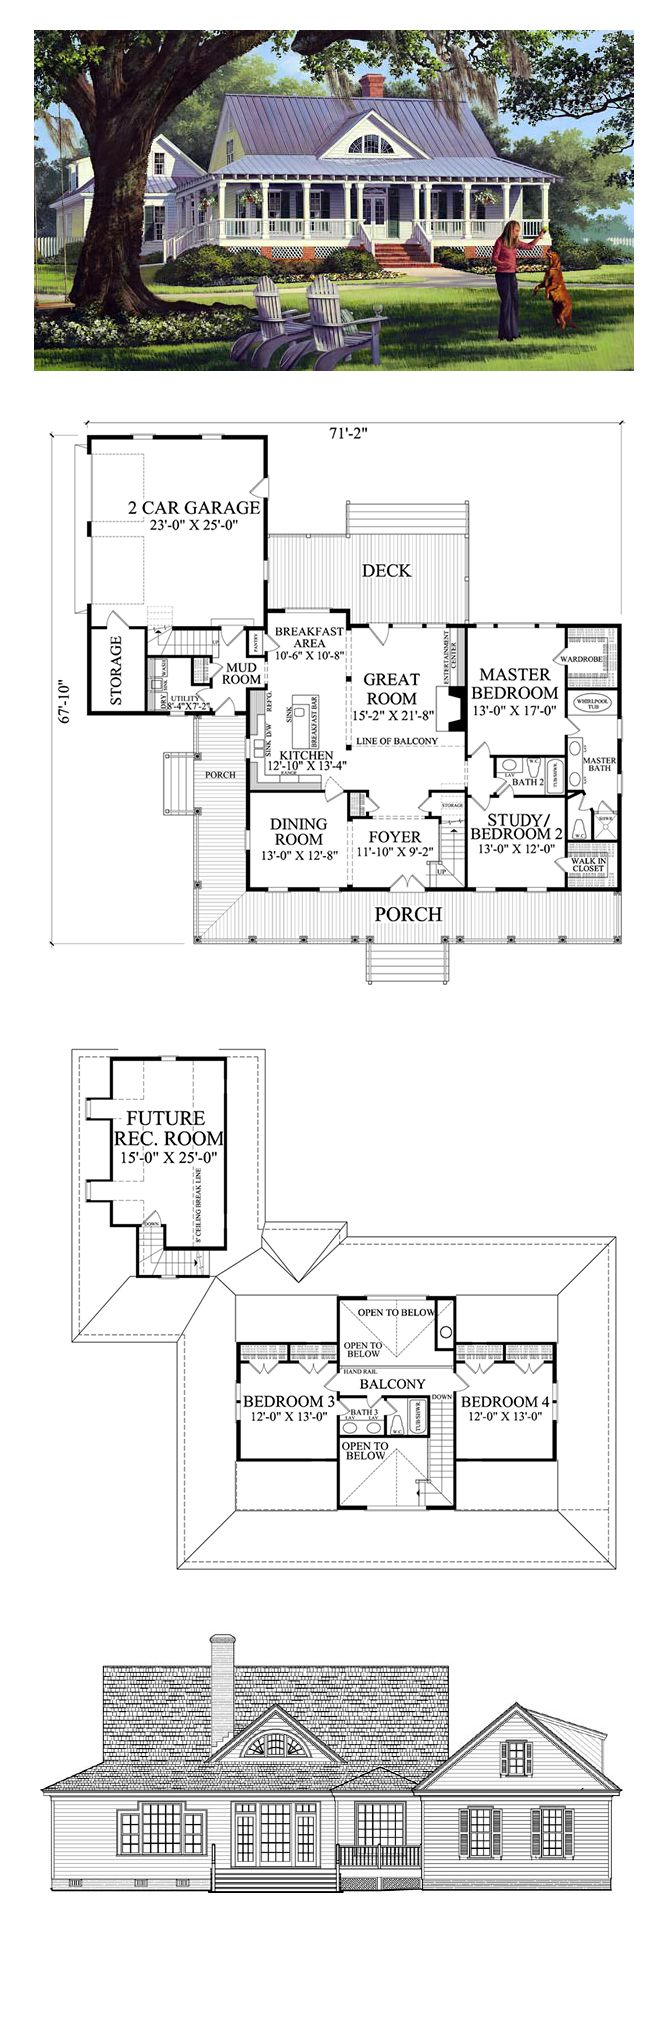 top 4 bedroom 3 bath house plans. I could delete some rooms  have a mighty fine tiny house Total Living Area 2553 sq 4 bedrooms and 3 bathrooms House Plans 194 best images on Pinterest Arquitetura Home plans